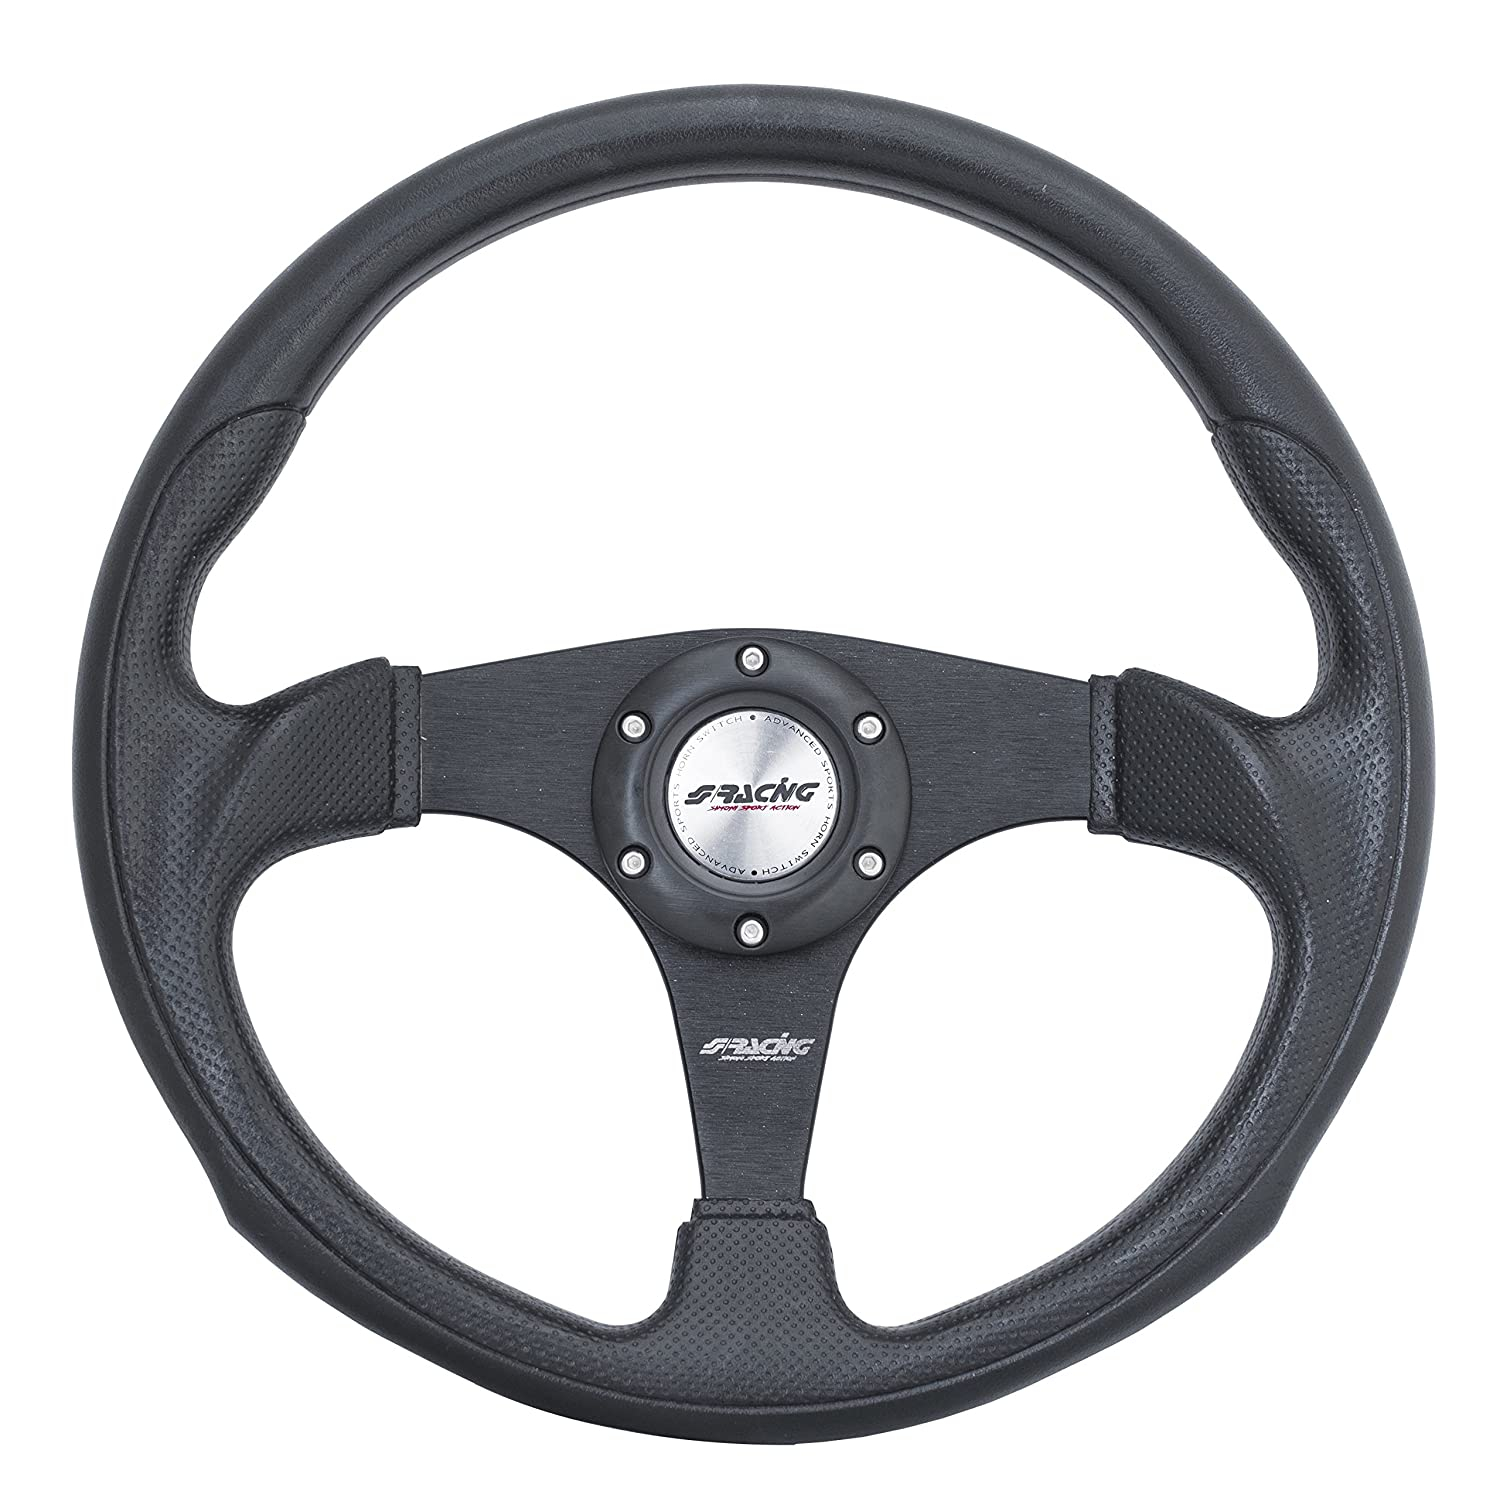 Simoni Racing ITG INTEGRALE Sport Steering Wheel, Three, Black Universal